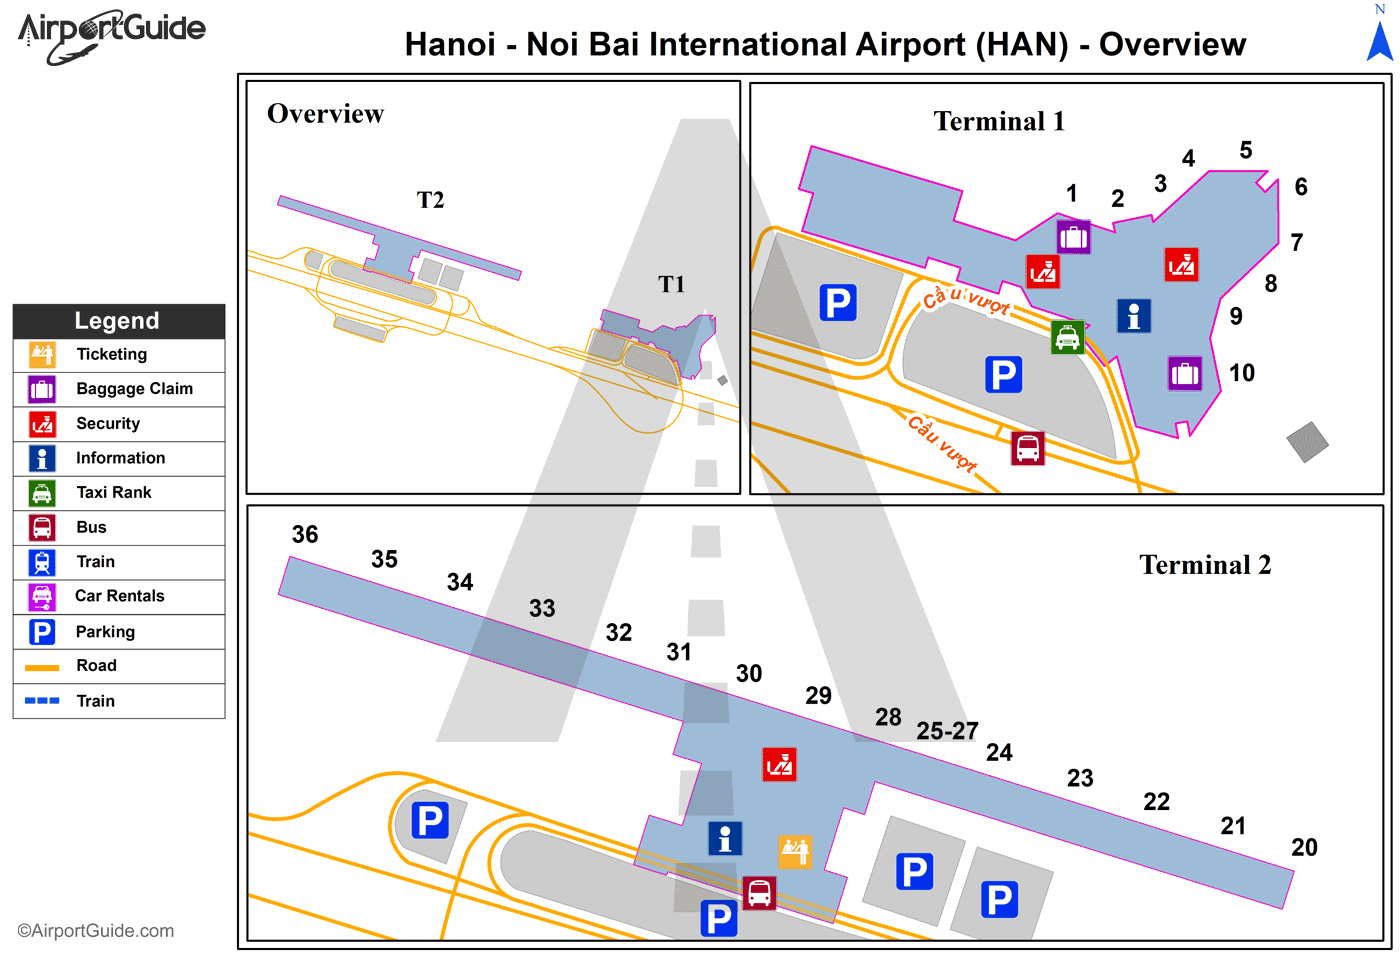 Hanoi - Noi Bai International (HAN) Airport Terminal Map - Overview